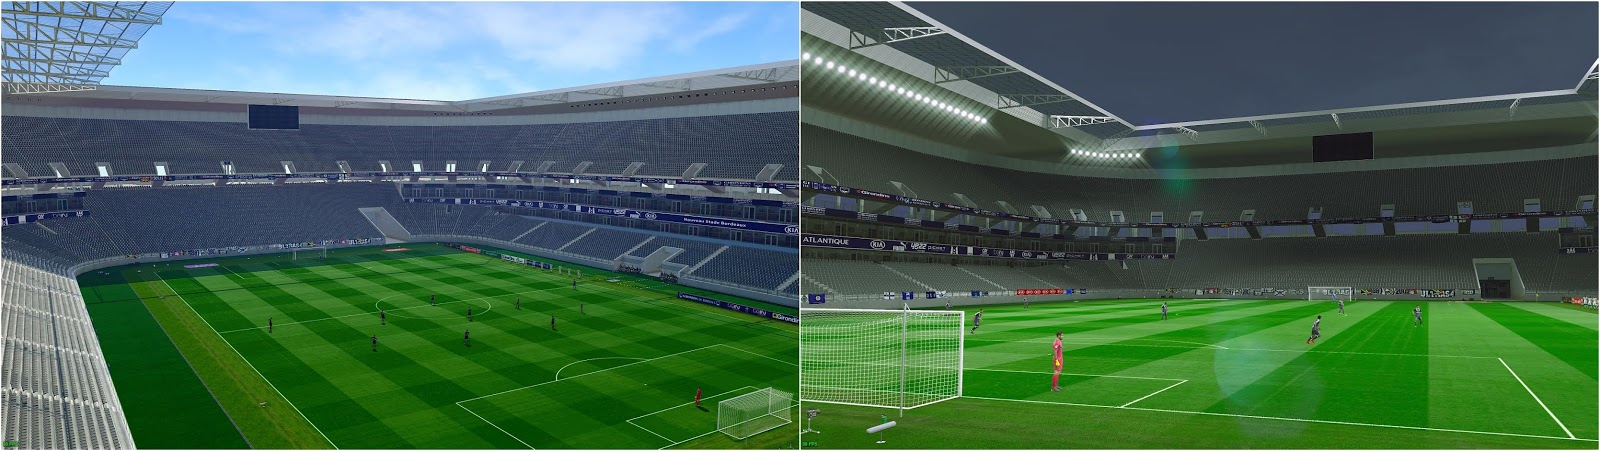 PES 2019 Matmut Atlantique Stadium by Gavi83